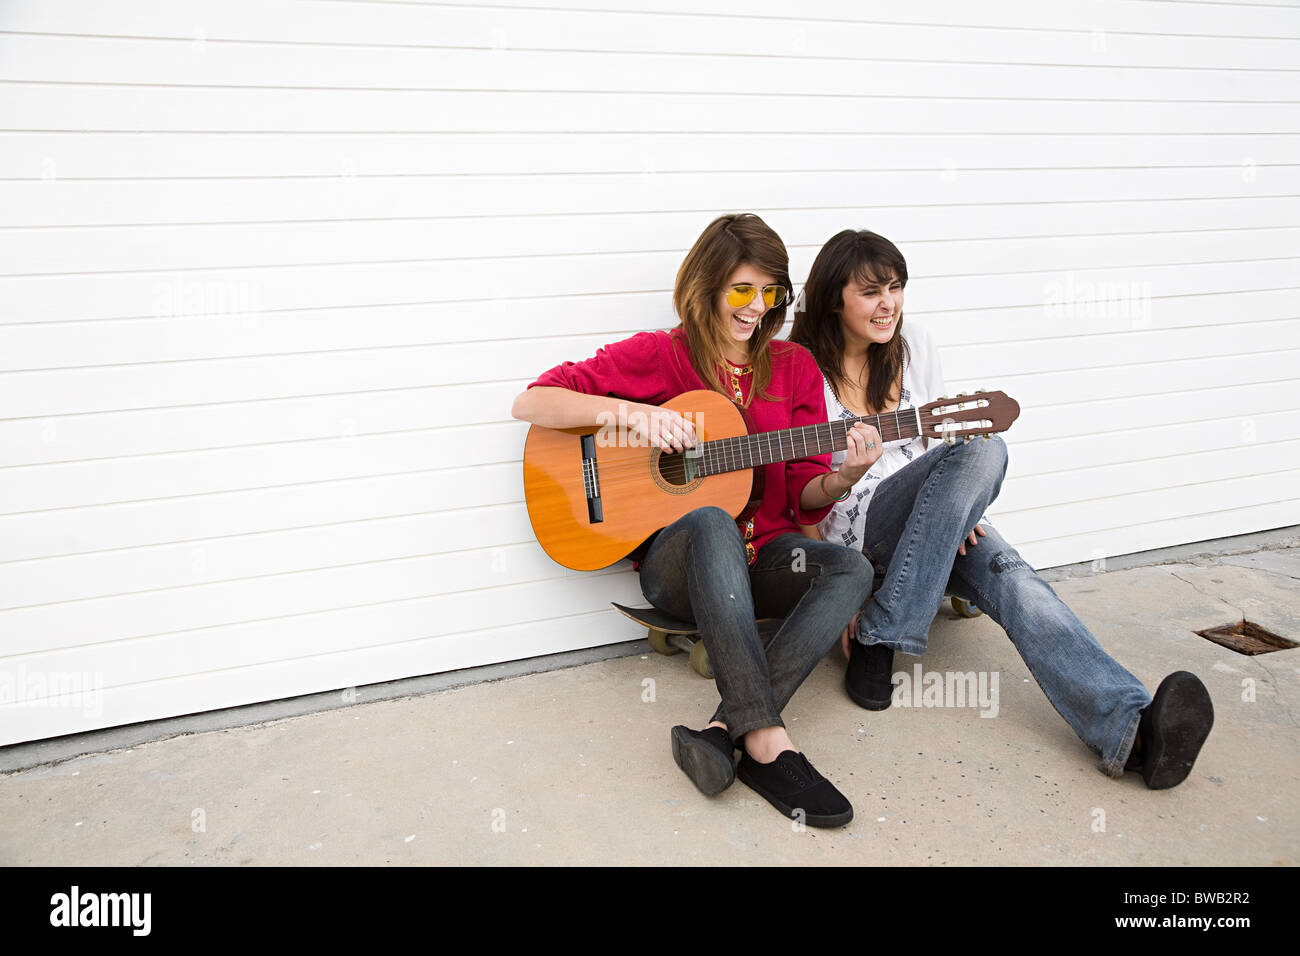 Two girls sitting on floor with guitar - Stock Image